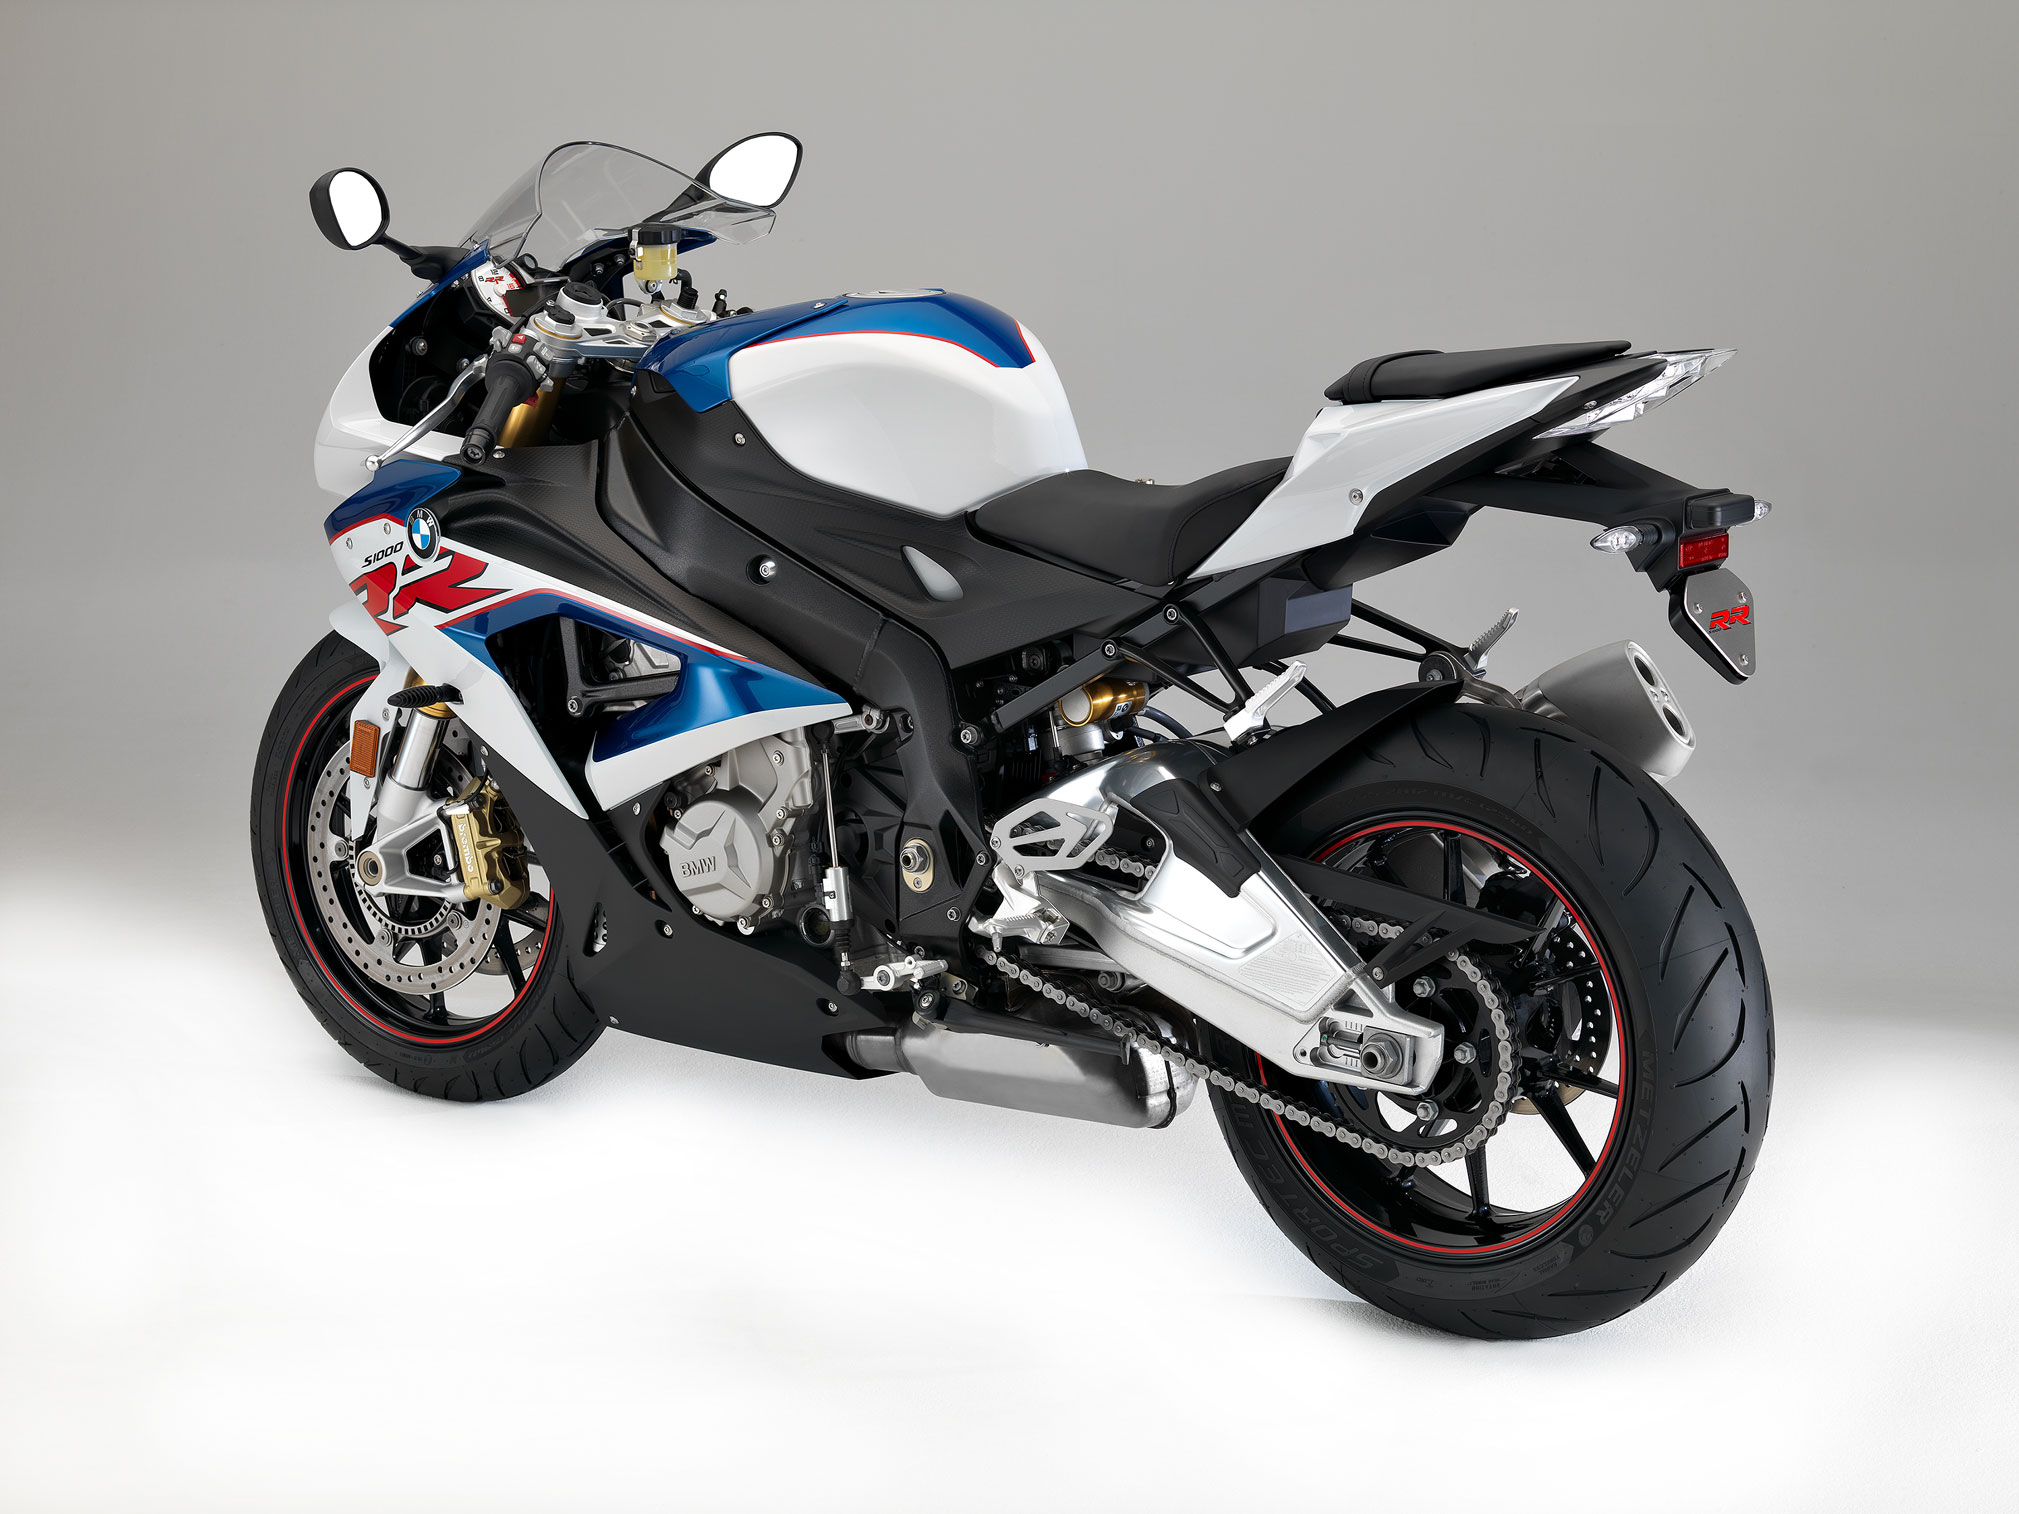 2019 bmw s1000rr guide total motorcycle. Black Bedroom Furniture Sets. Home Design Ideas